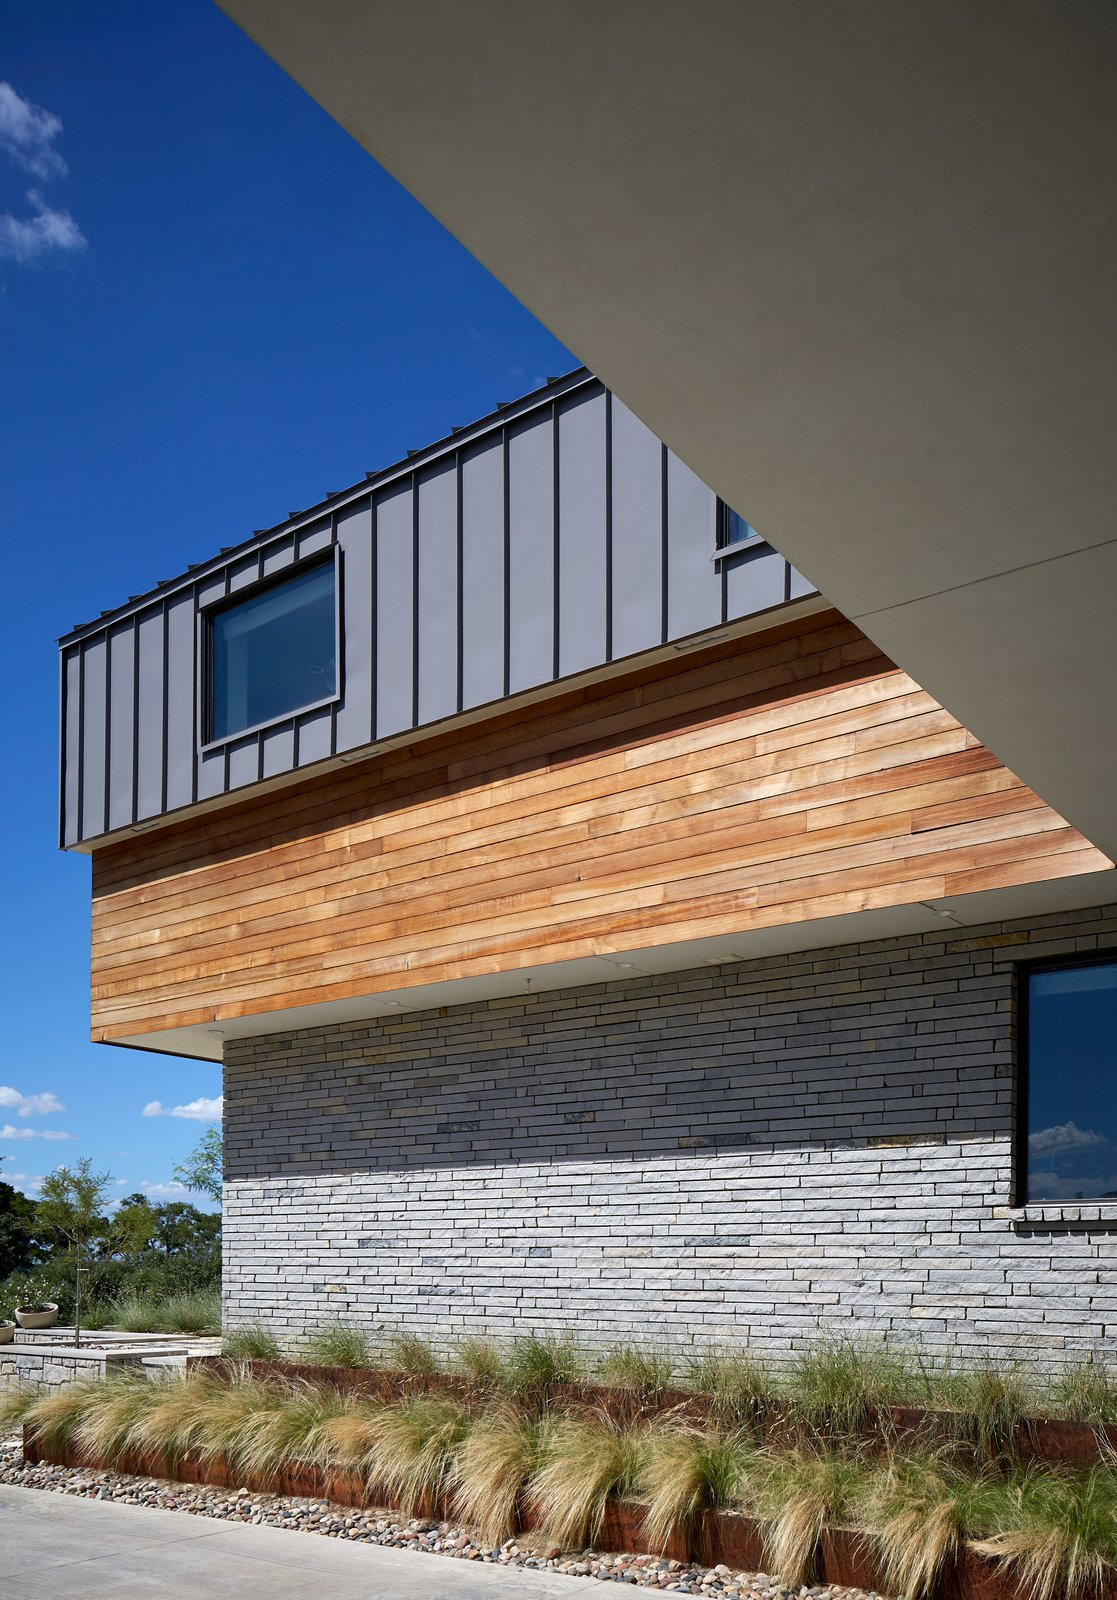 Exterior, Metal Siding Material, House Building Type, Wood Siding Material, and Brick Siding Material  Lake Waxahachie Home by Mark Odom Studio